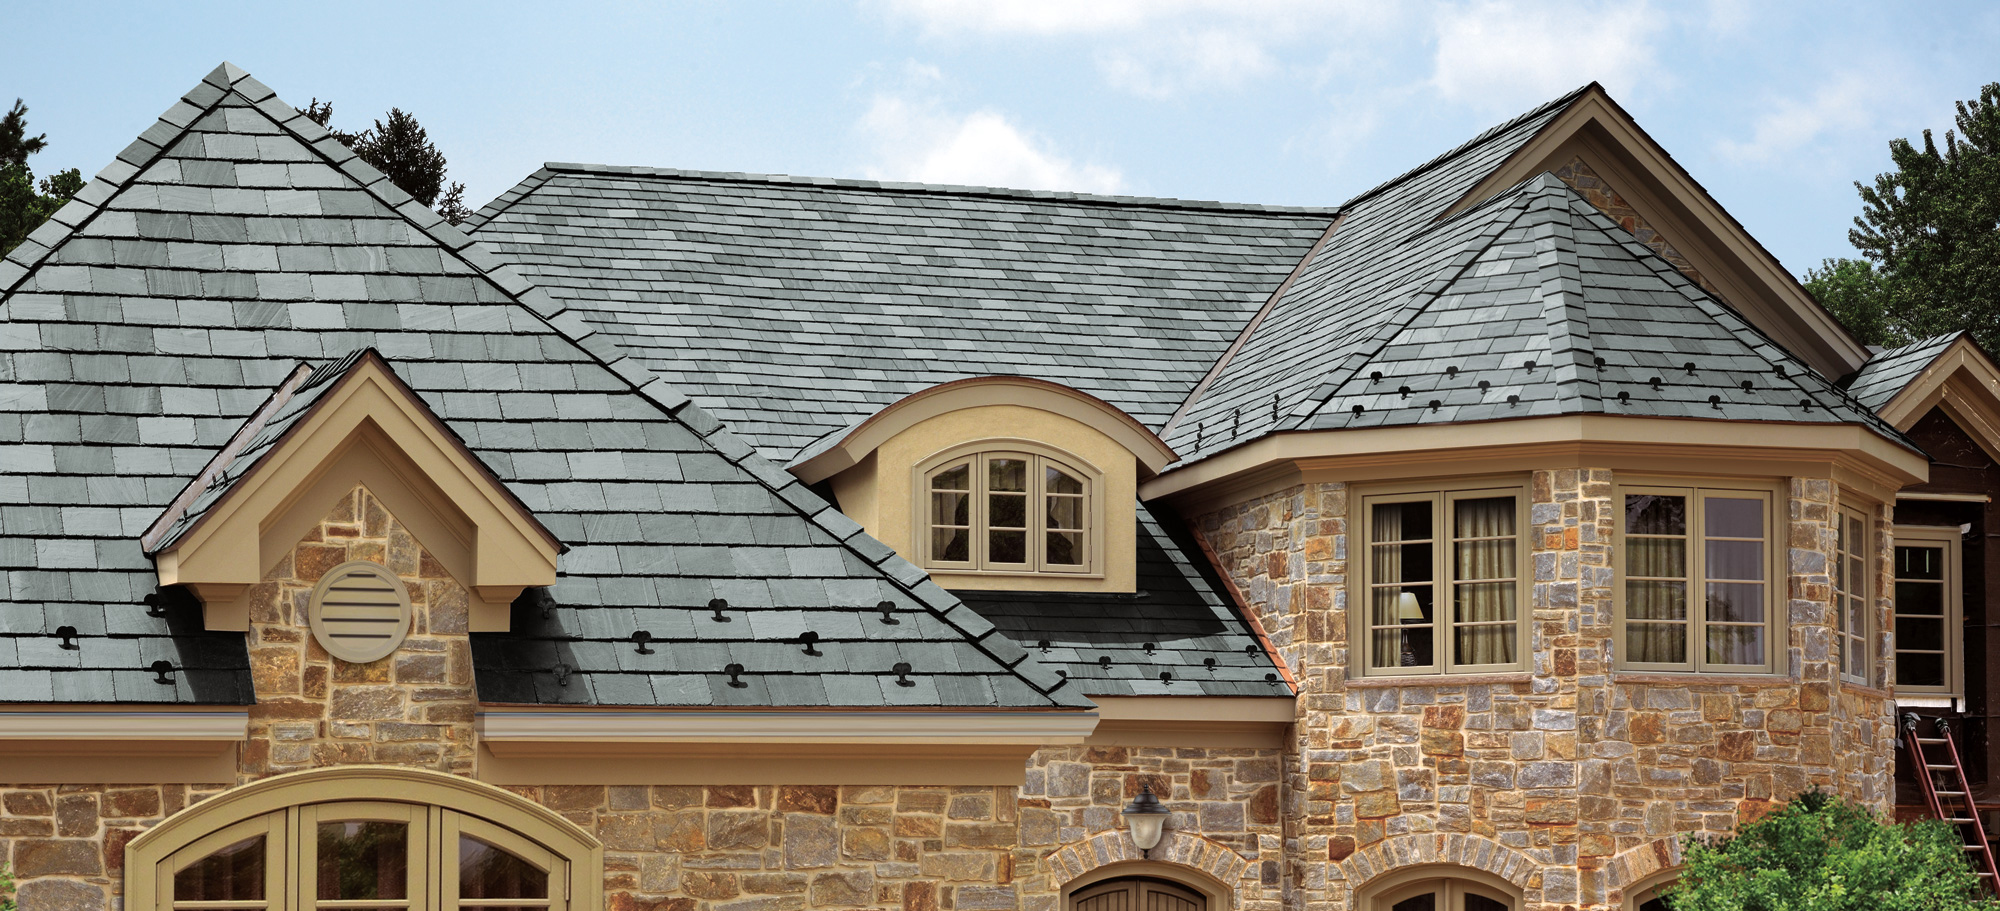 Stay Dry Roofing Reviews Roofing At 5060 E 62nd St